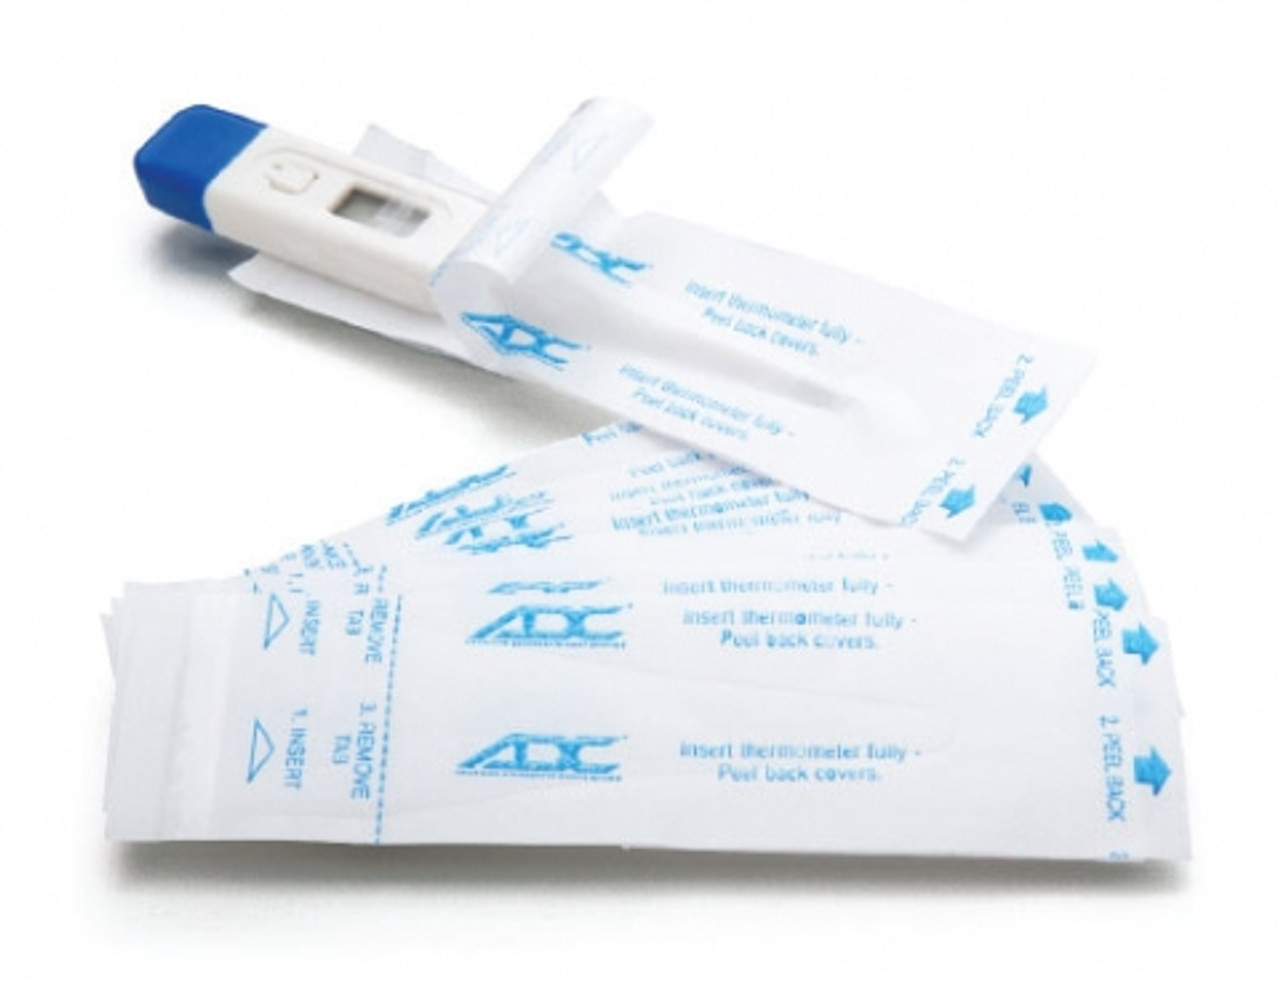 Disposable Sheaths for Digital Thermometers - 100 per Box